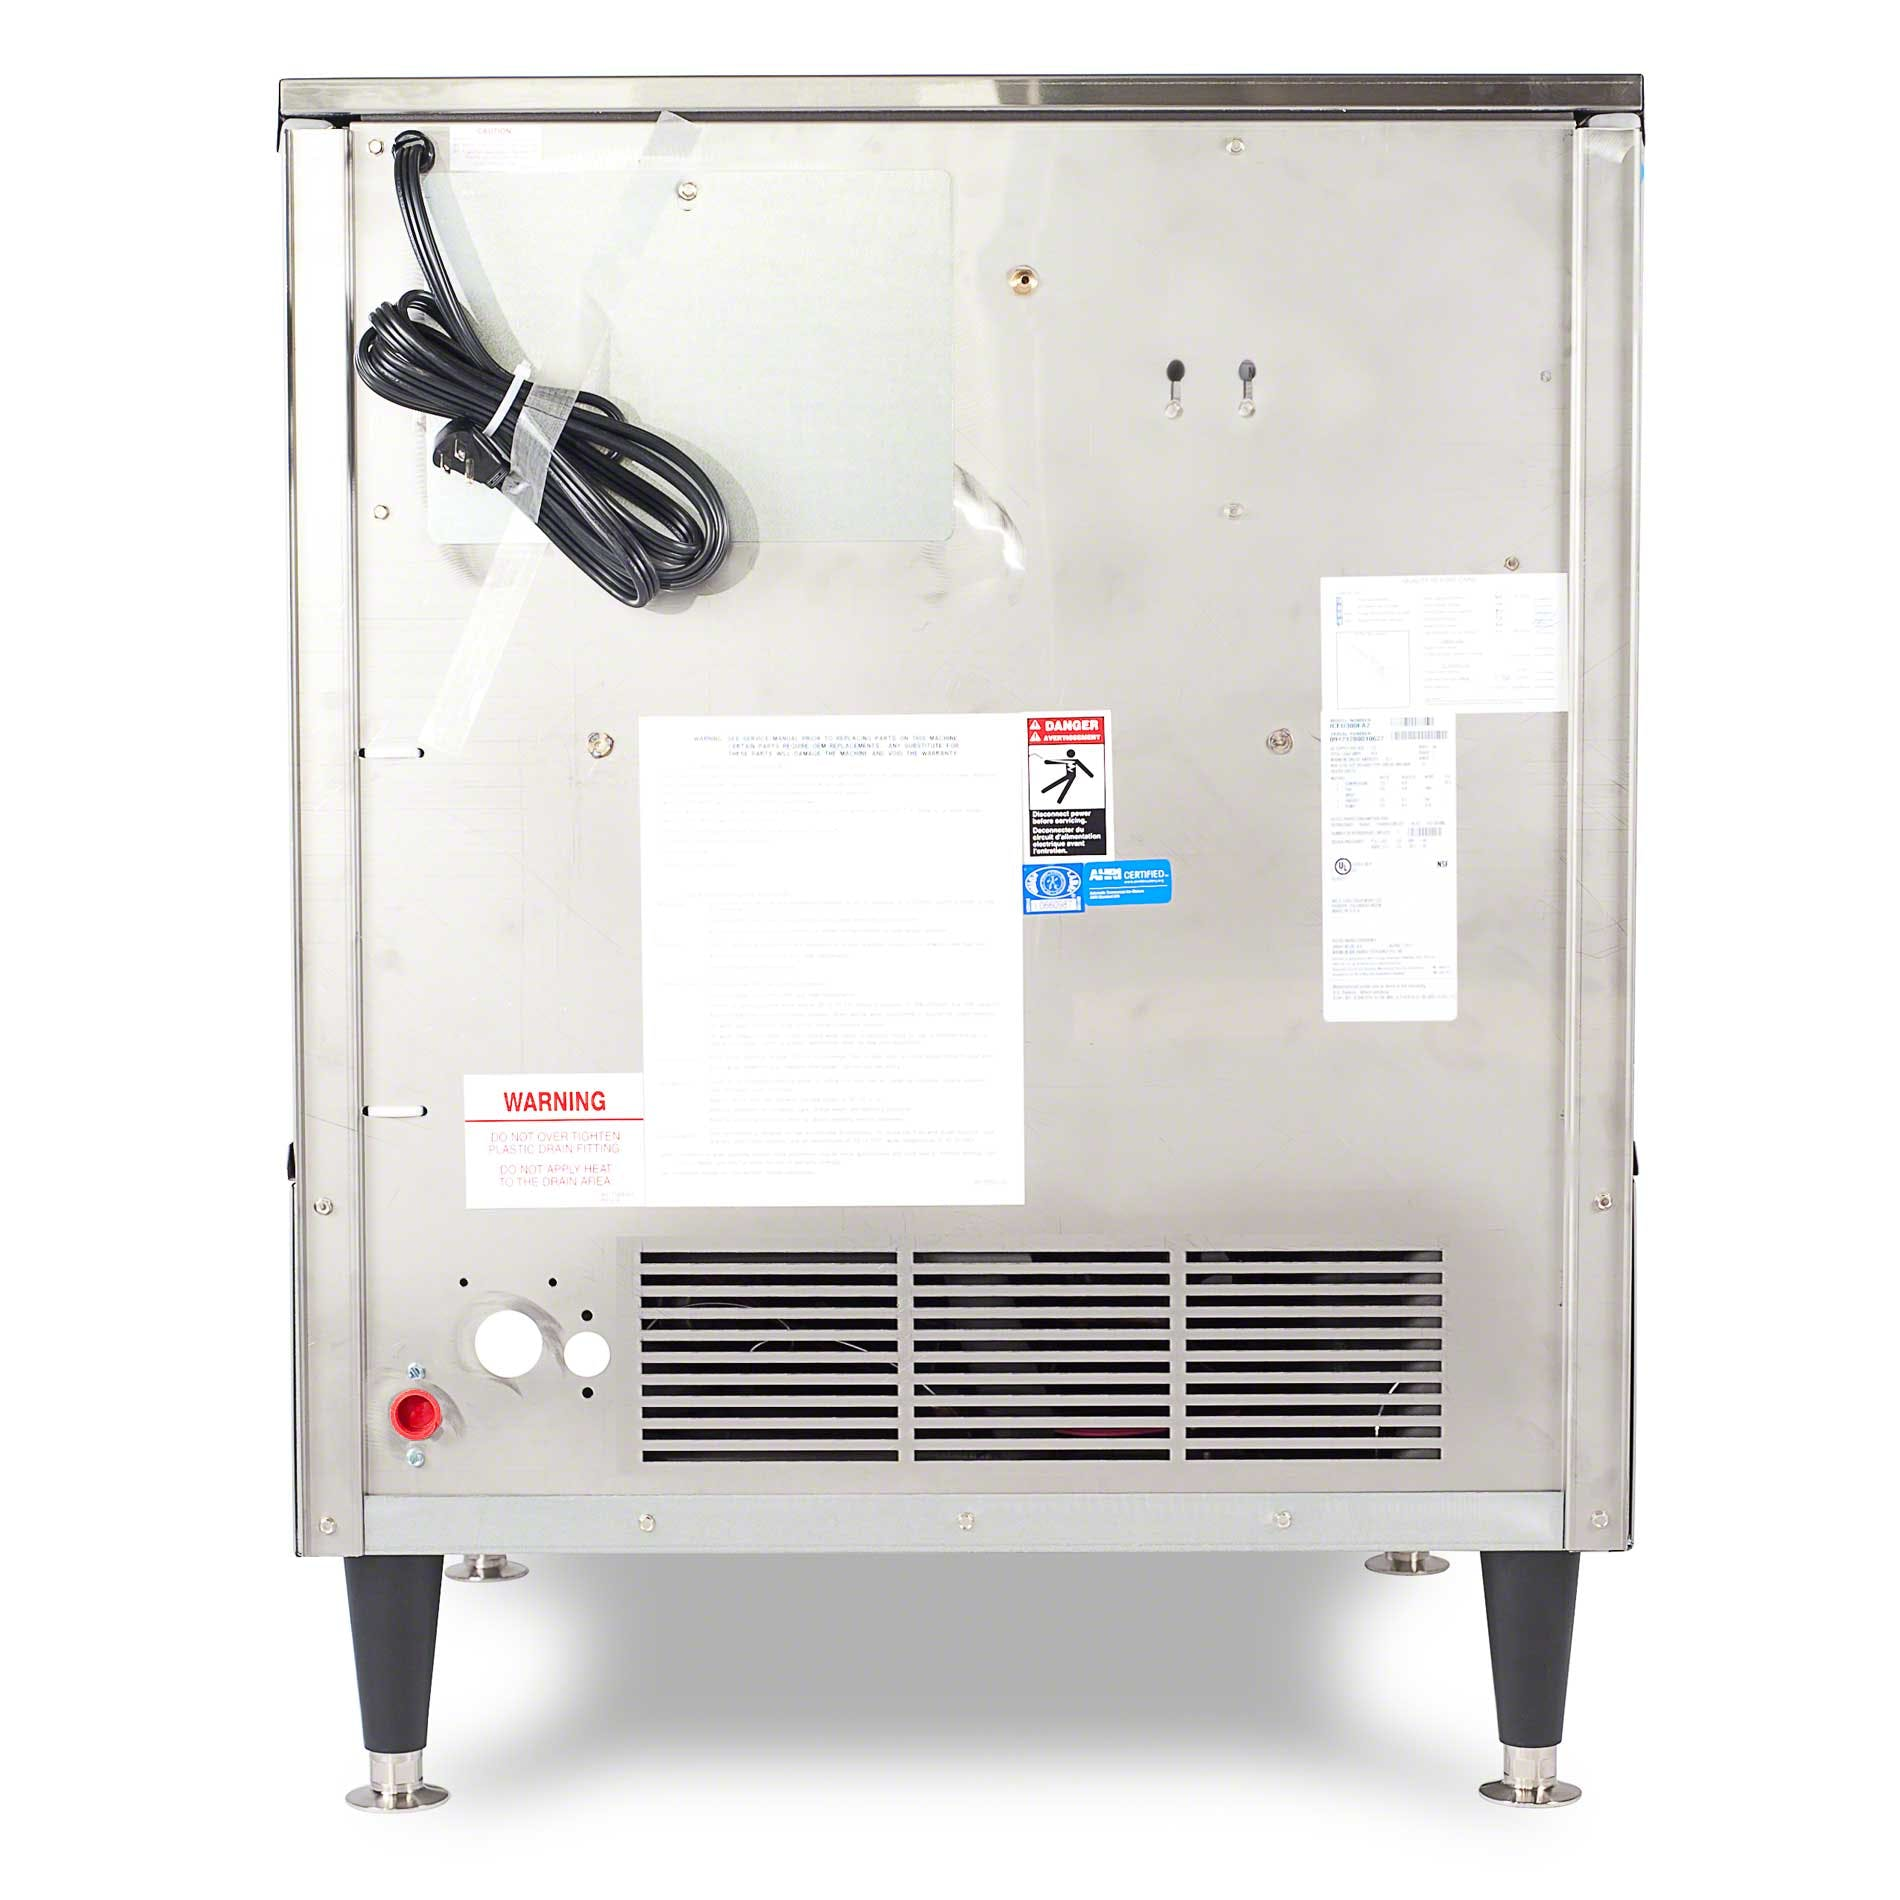 Ice-O-Matic - ICEU226HA 241 lb Self-Contained Half Cube Ice Machine - sold by Food Service Warehouse